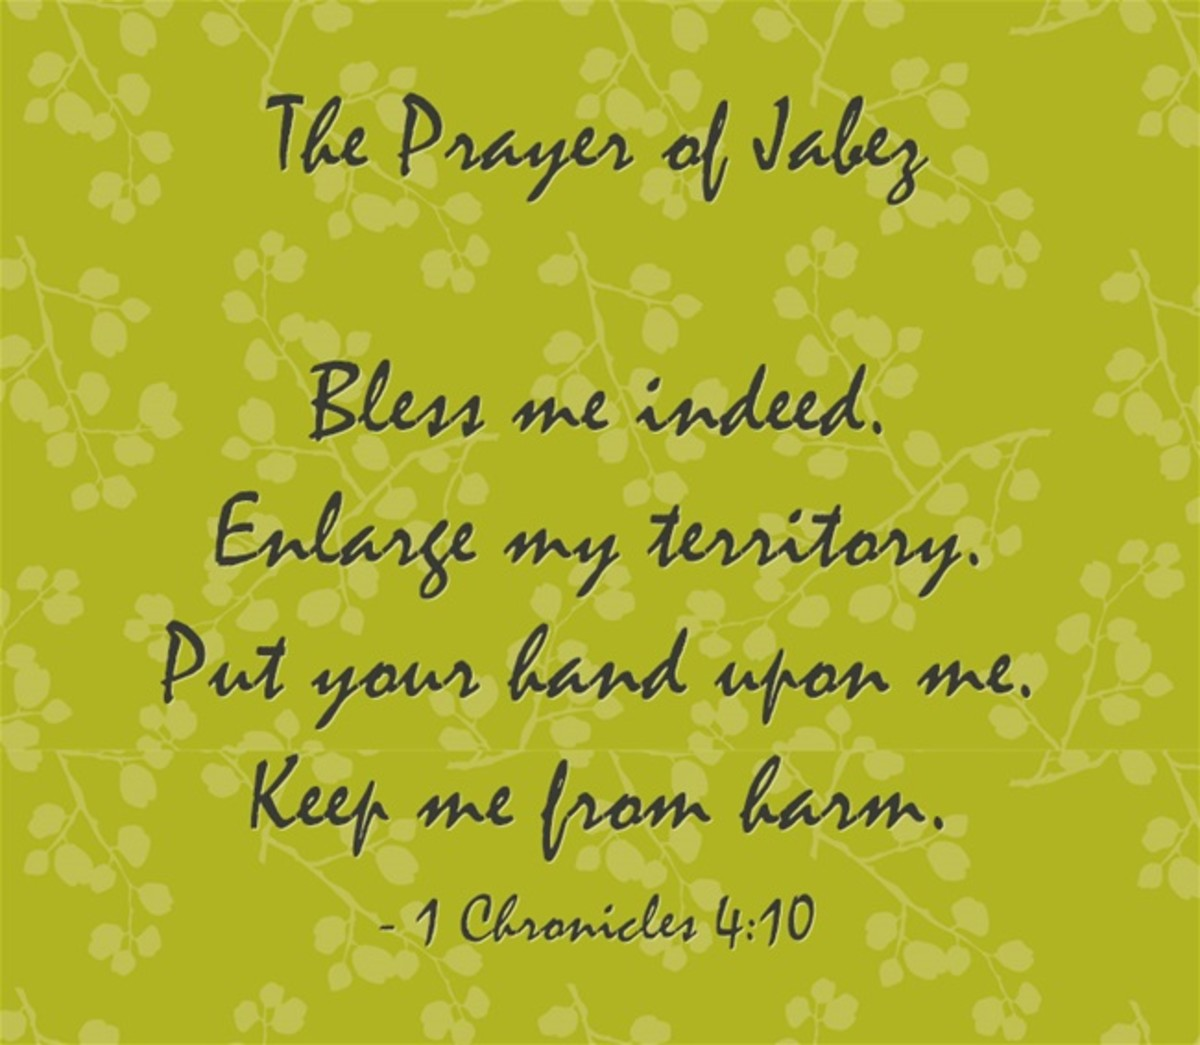 Prayer of Jabez Explained